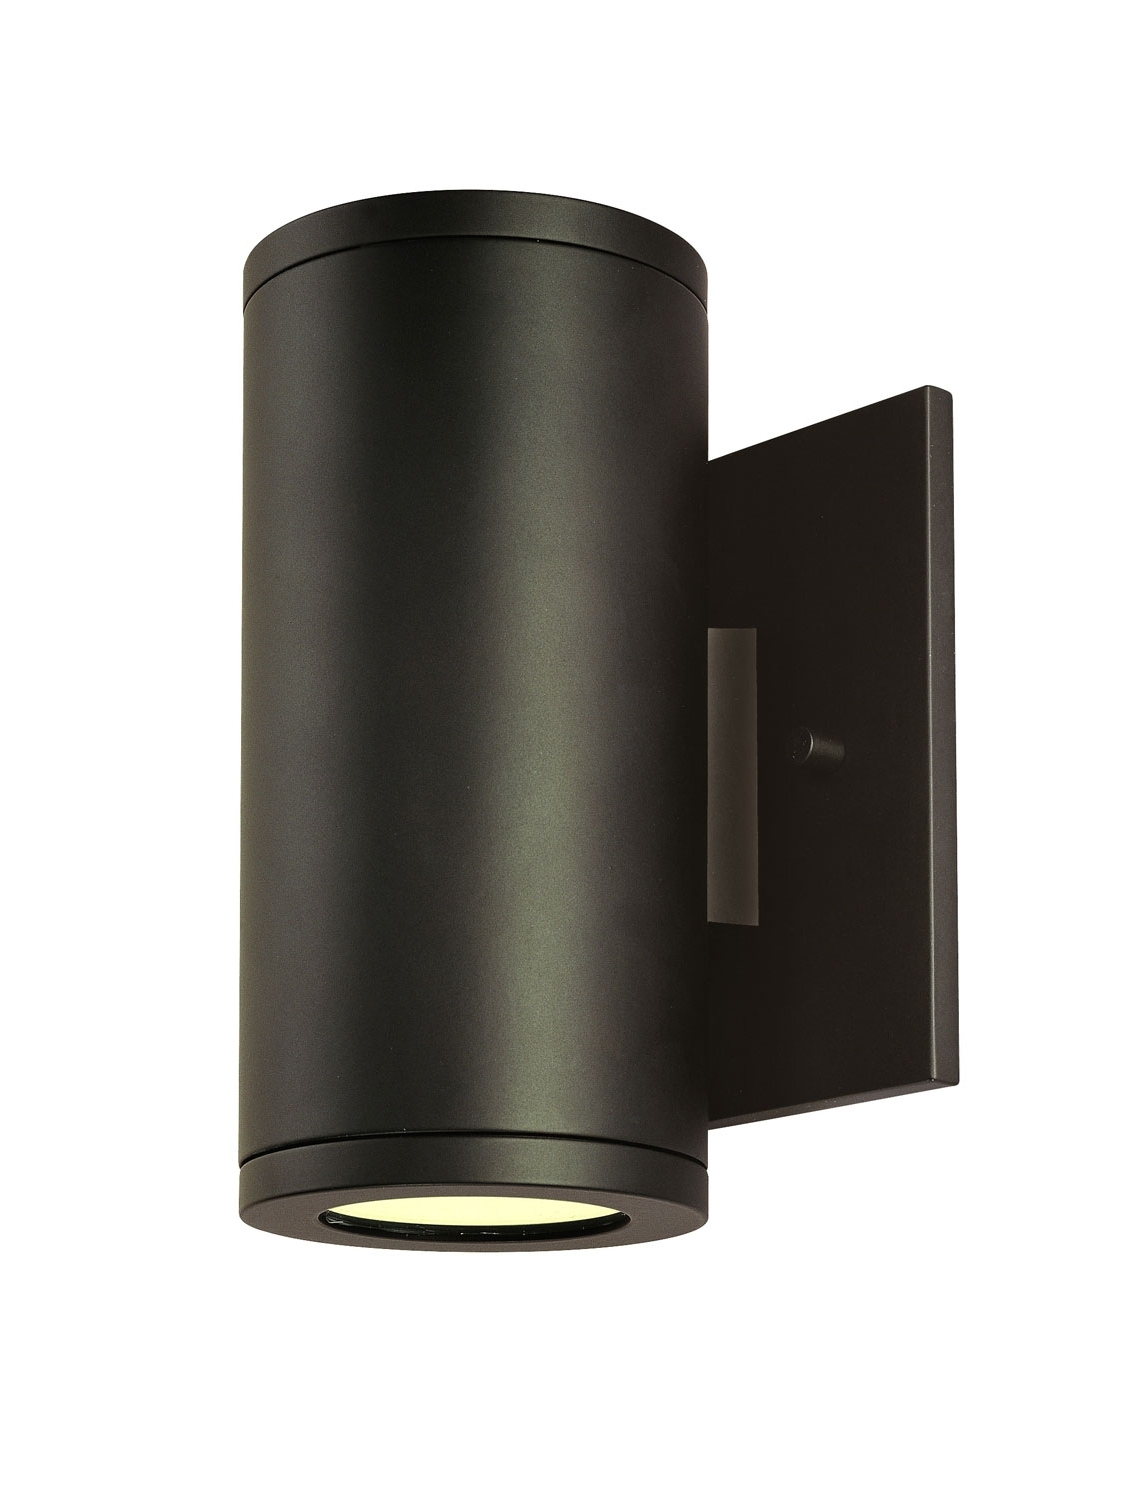 Fashionable Lamp: Loved Outdoor Wall Lighting Designs Wall Sconces Outdoor Intended For Singapore Outdoor Wall Lighting (View 5 of 20)